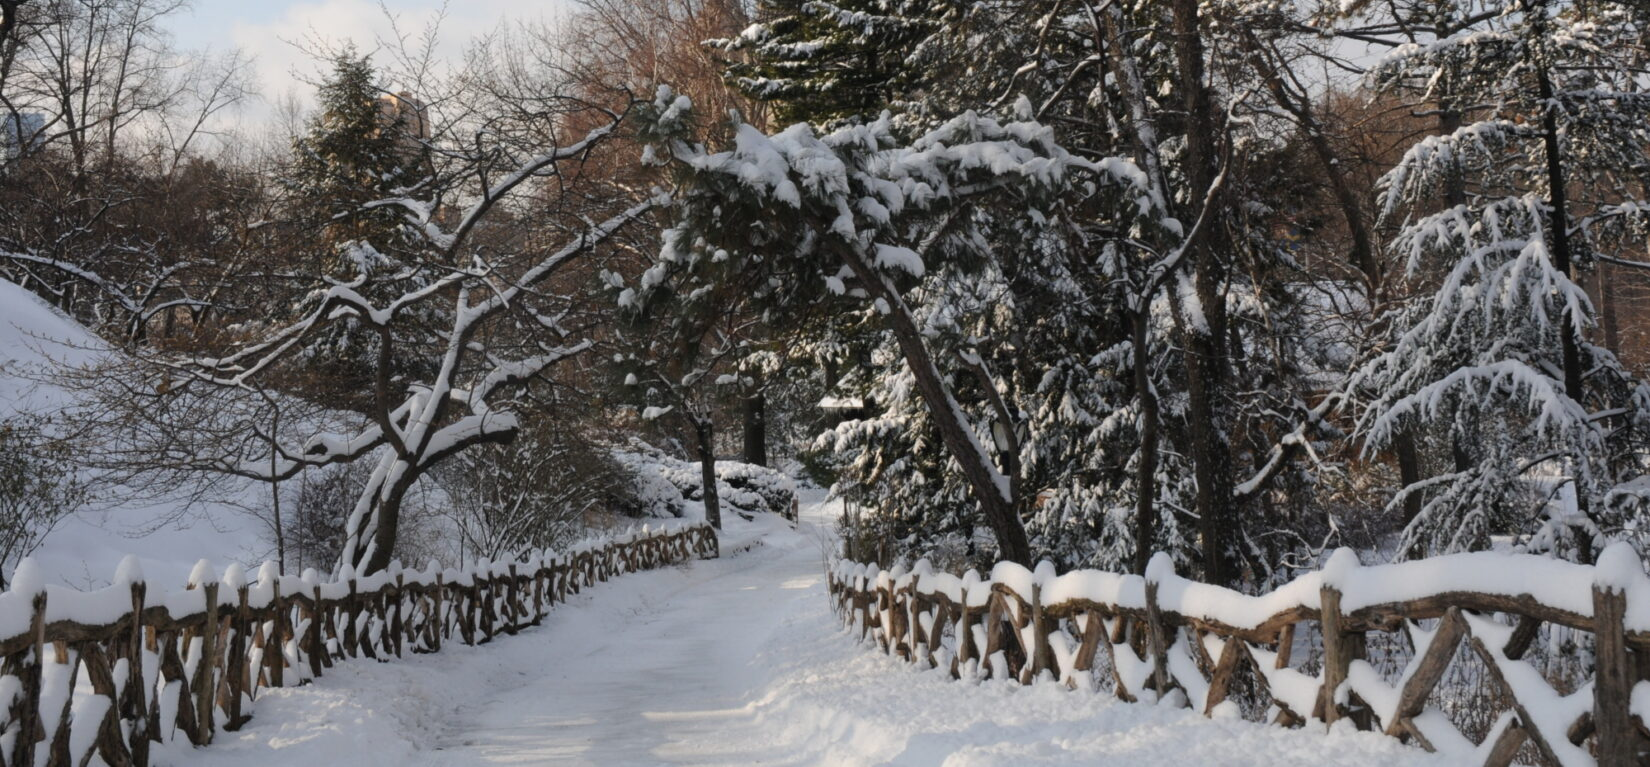 A recent snowfall turns this path, with rusitc fencing, into a classic winter scene